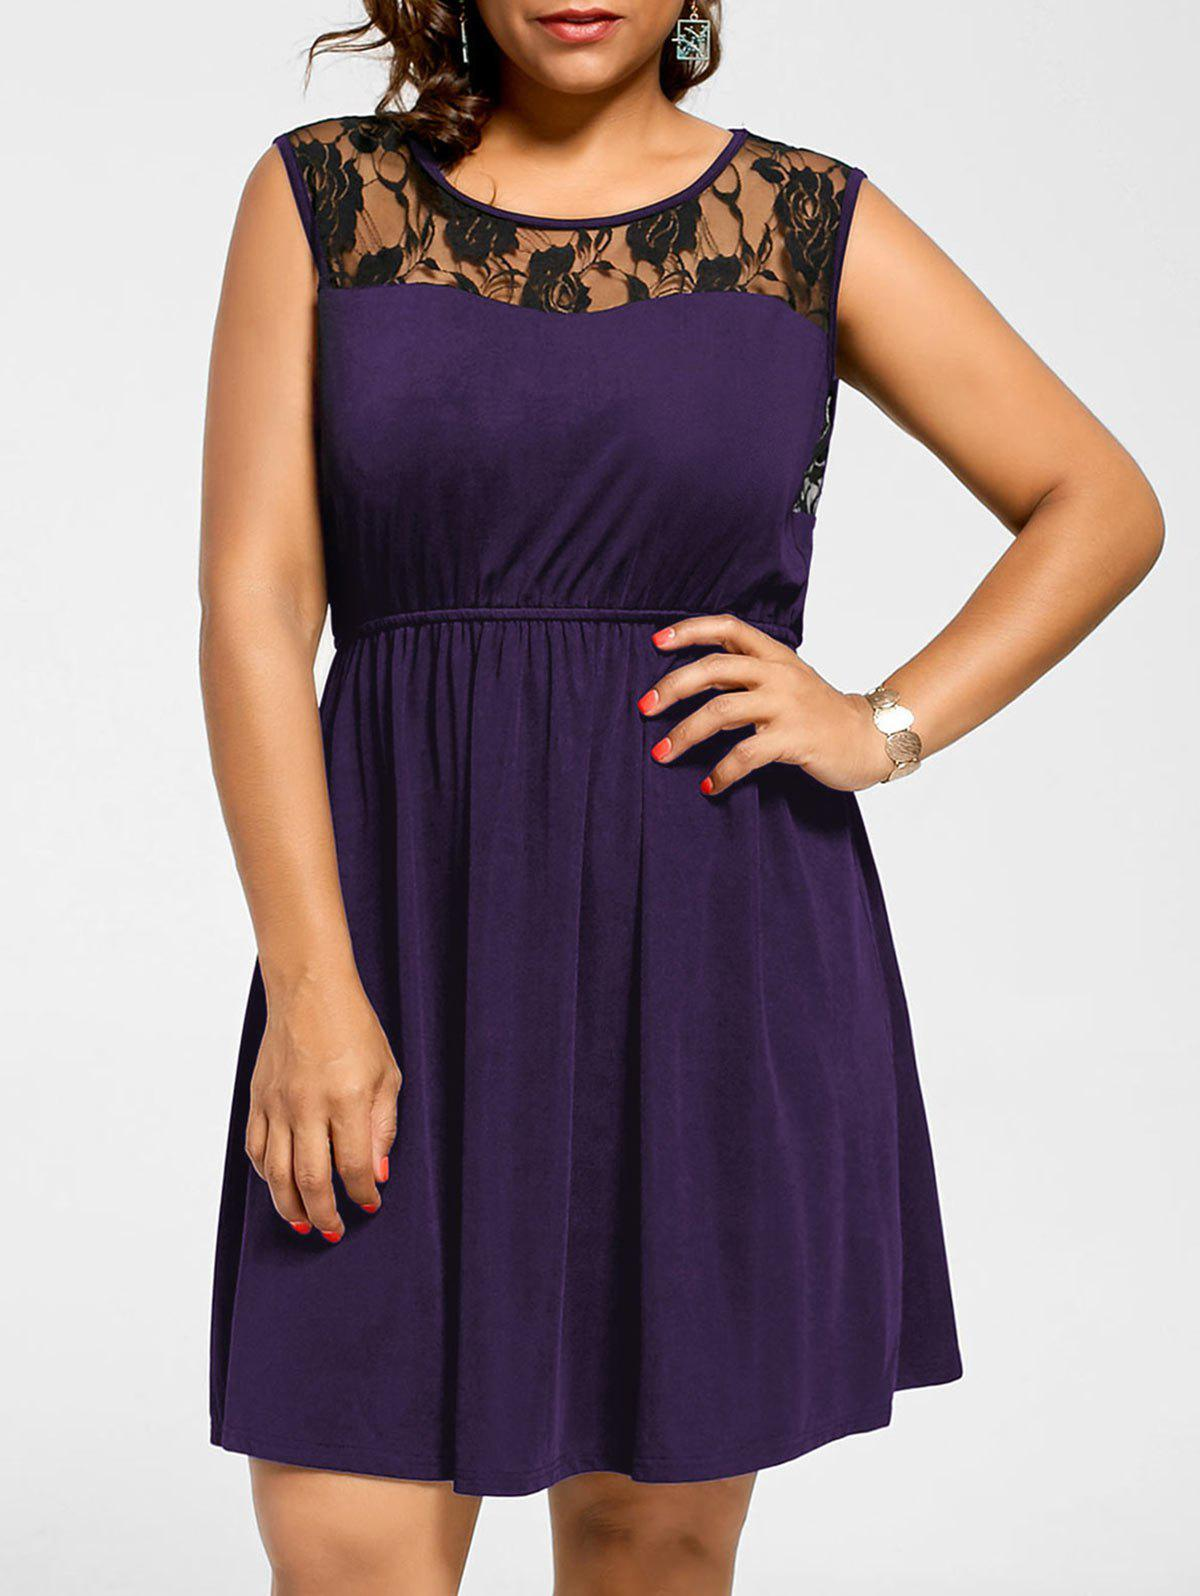 Robe Patineuse Grande Taille Dentelle sans Manches - Pourpre XL